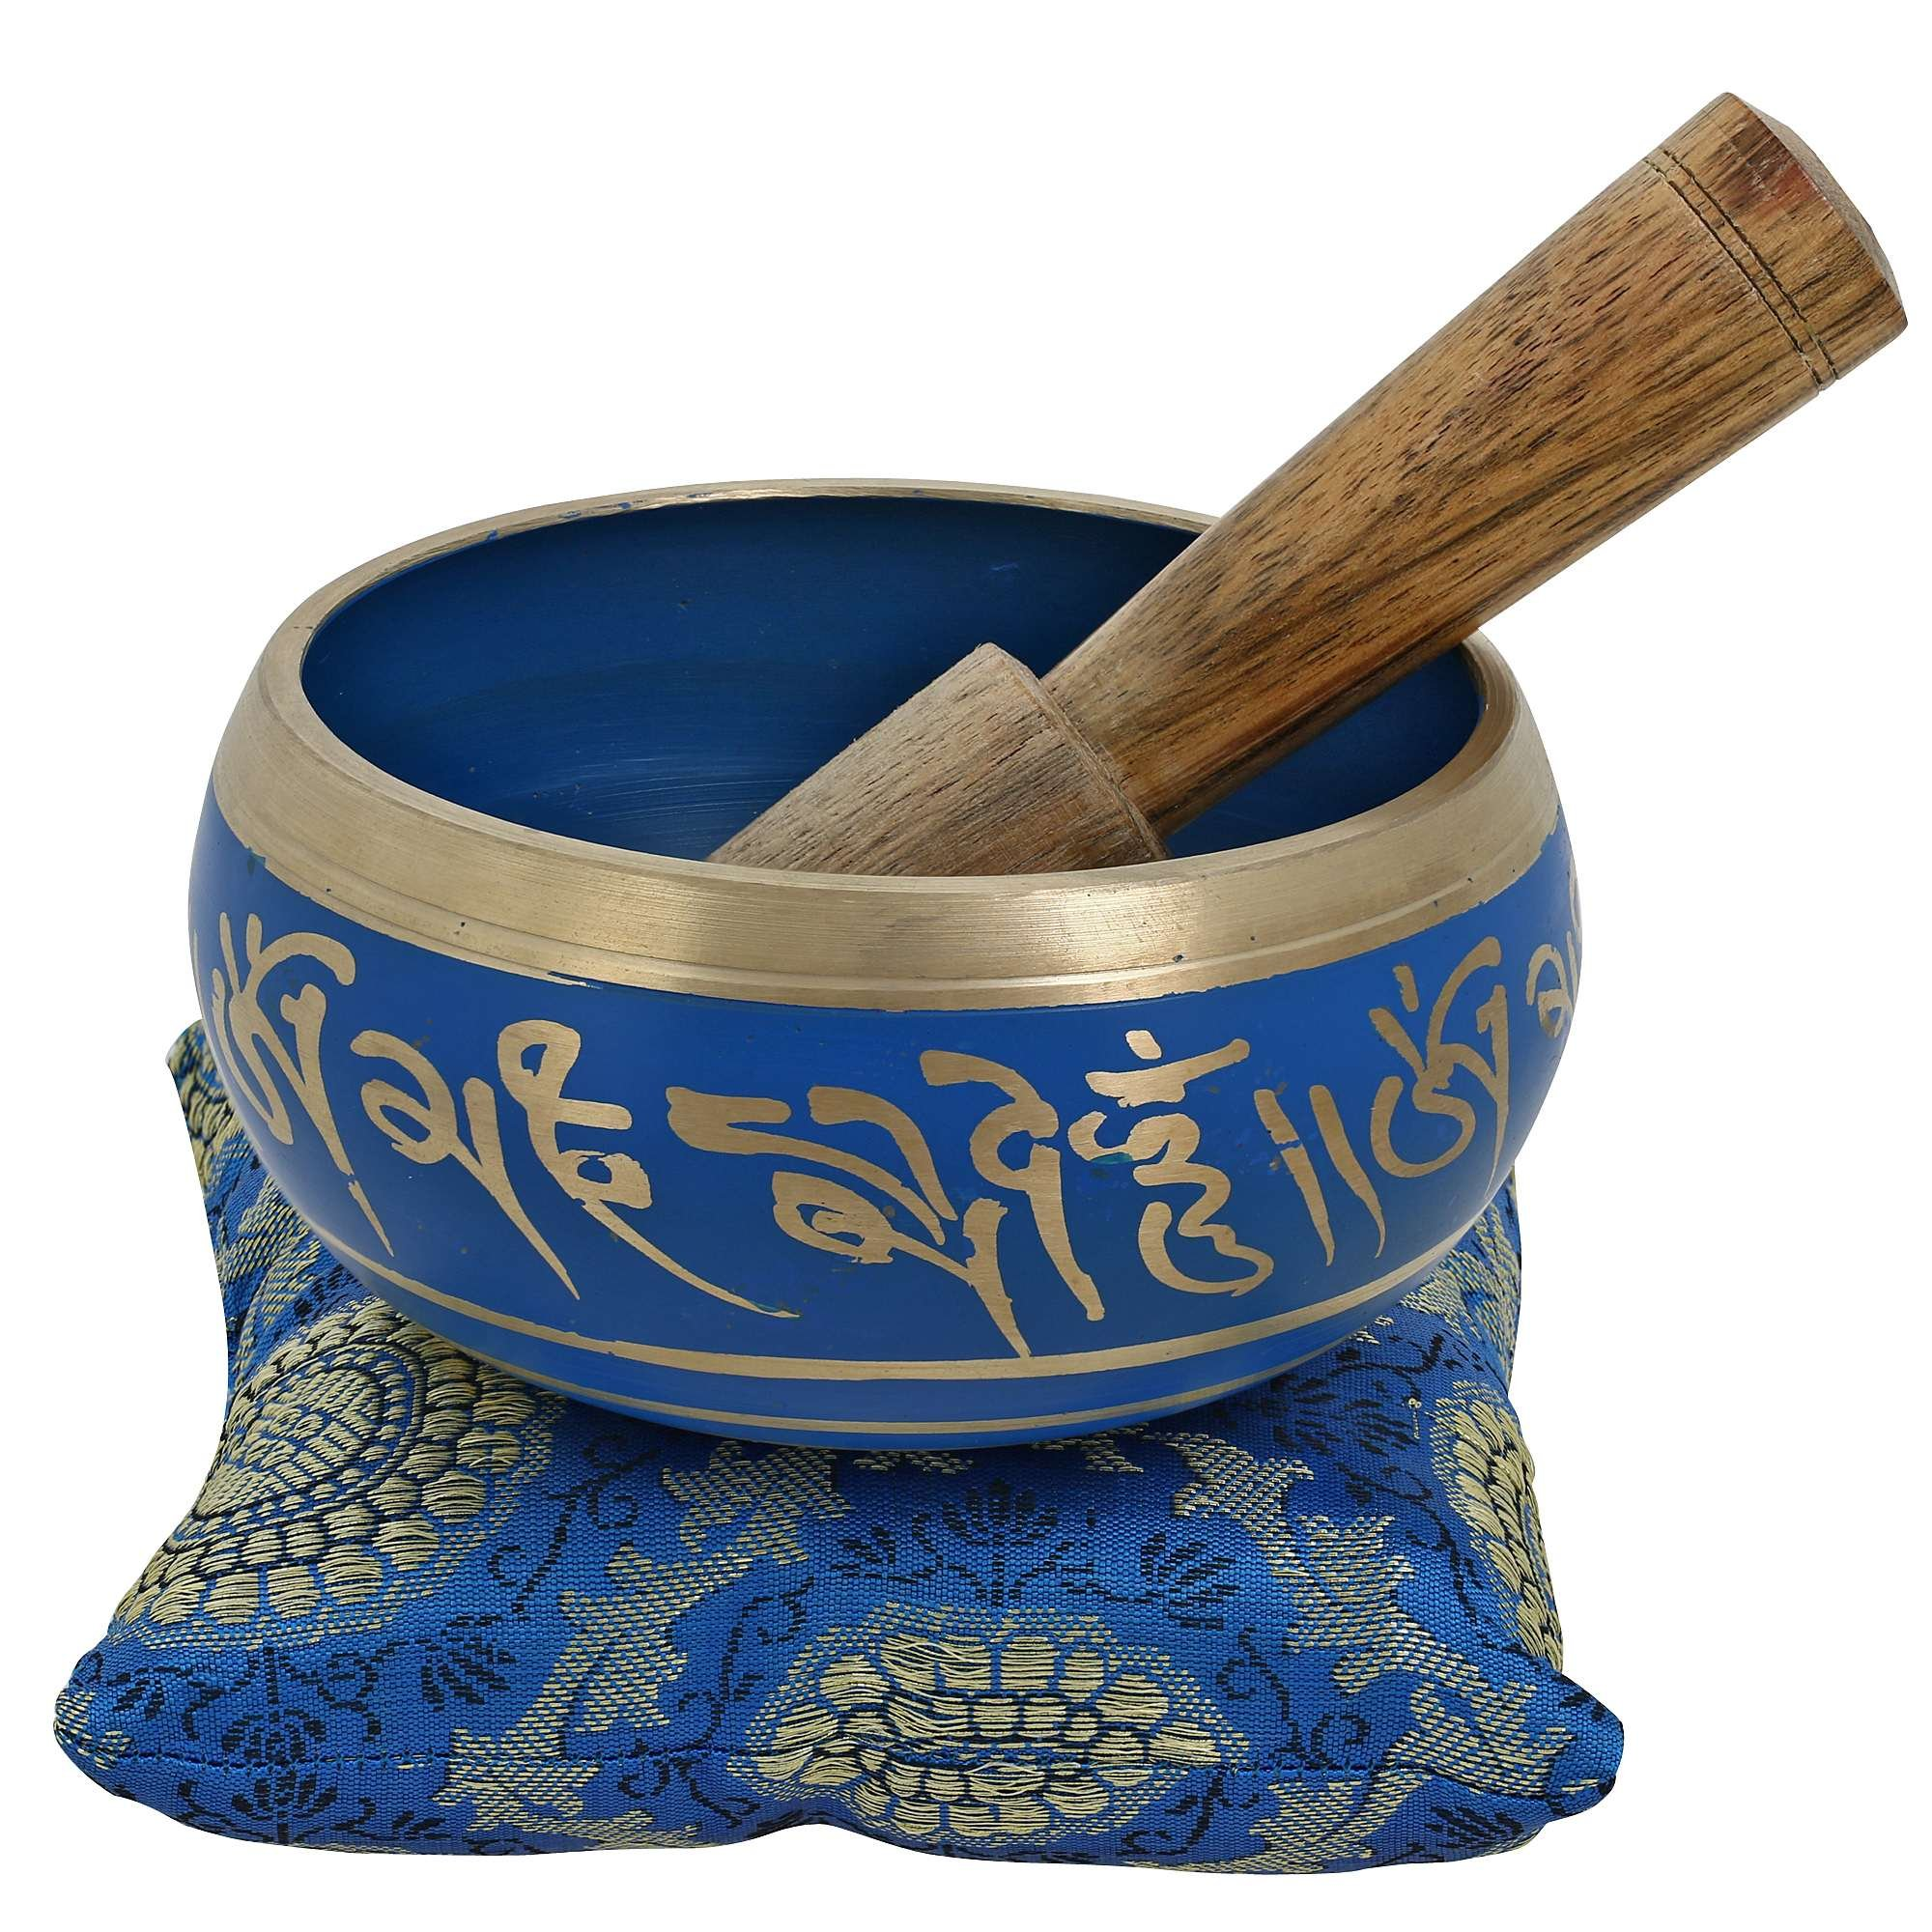 Tibetan Buddhist Small Hand Painted Singing Bowl with Cushion from India for Meditation Sound Healing Prayer Percussion Musical Instrument 4 Inch